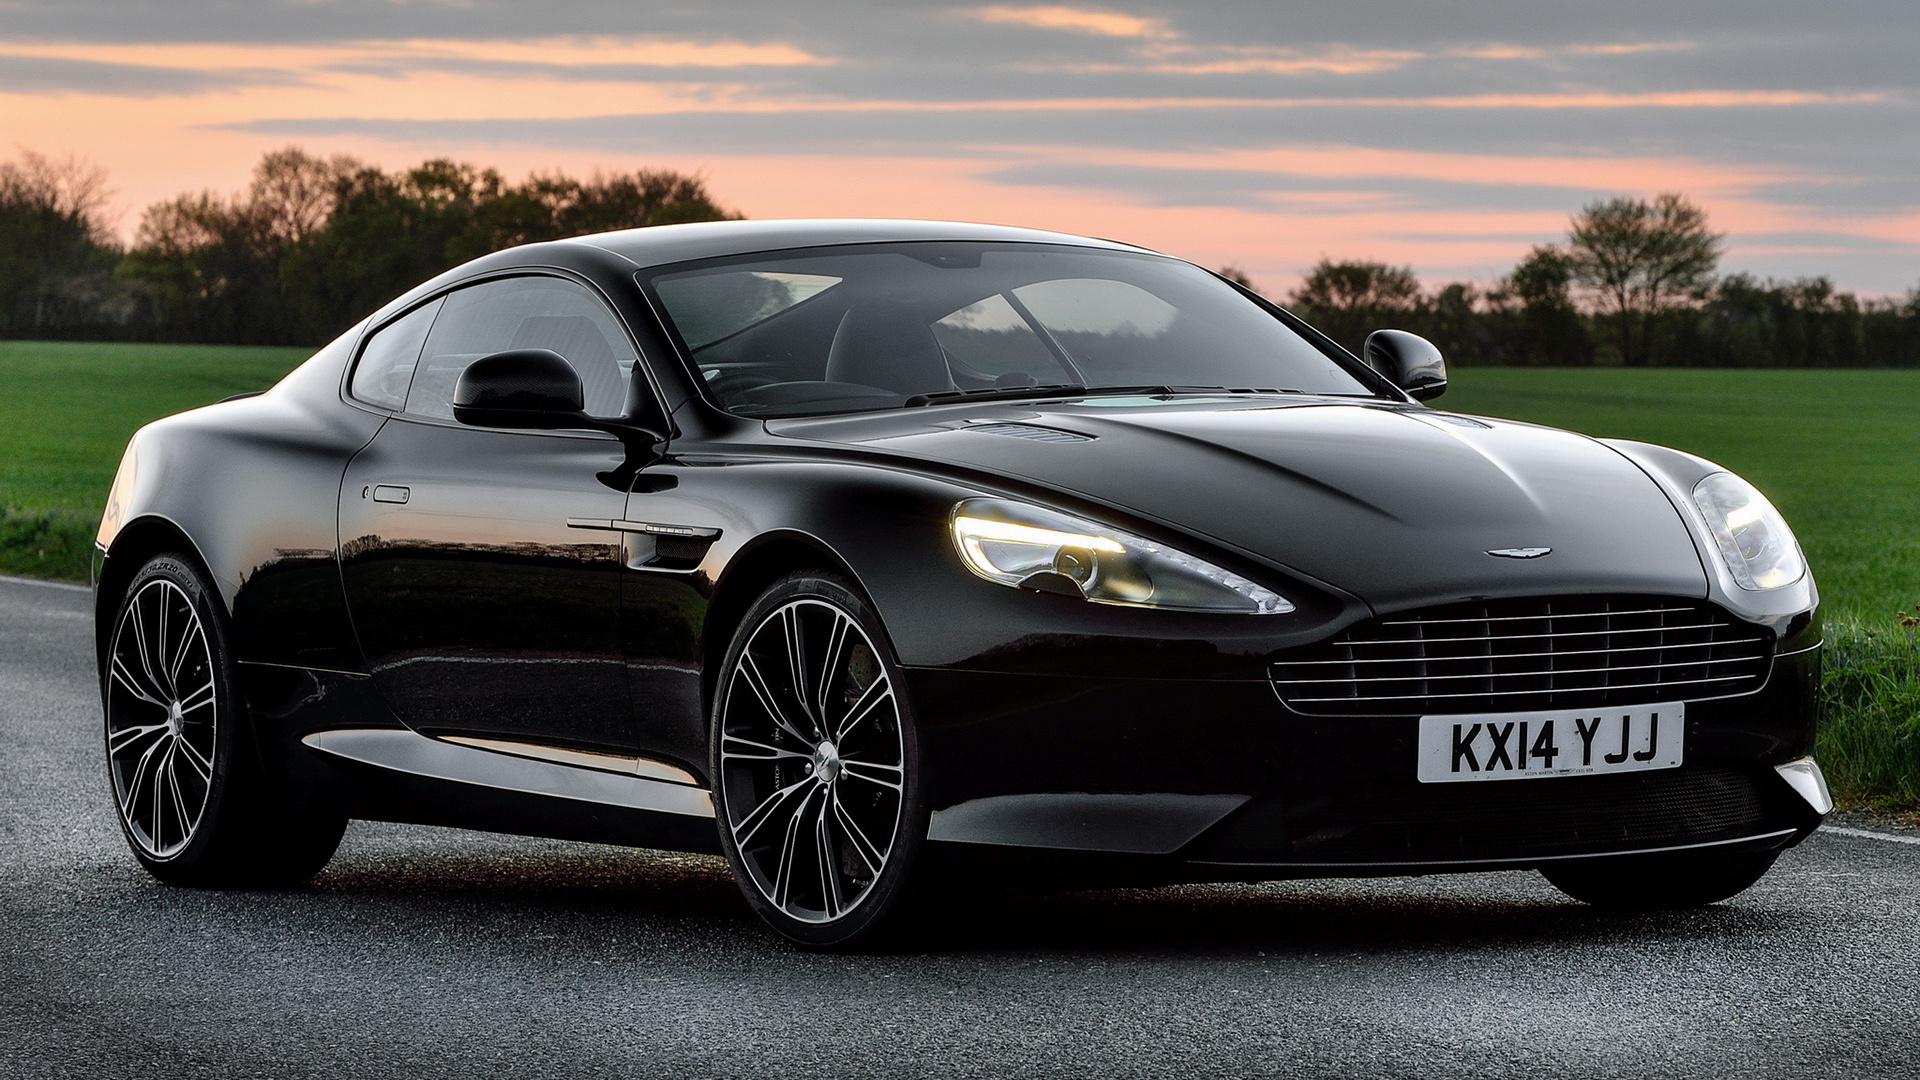 Aston Martin Db Carbon Black Wallpaper Hd